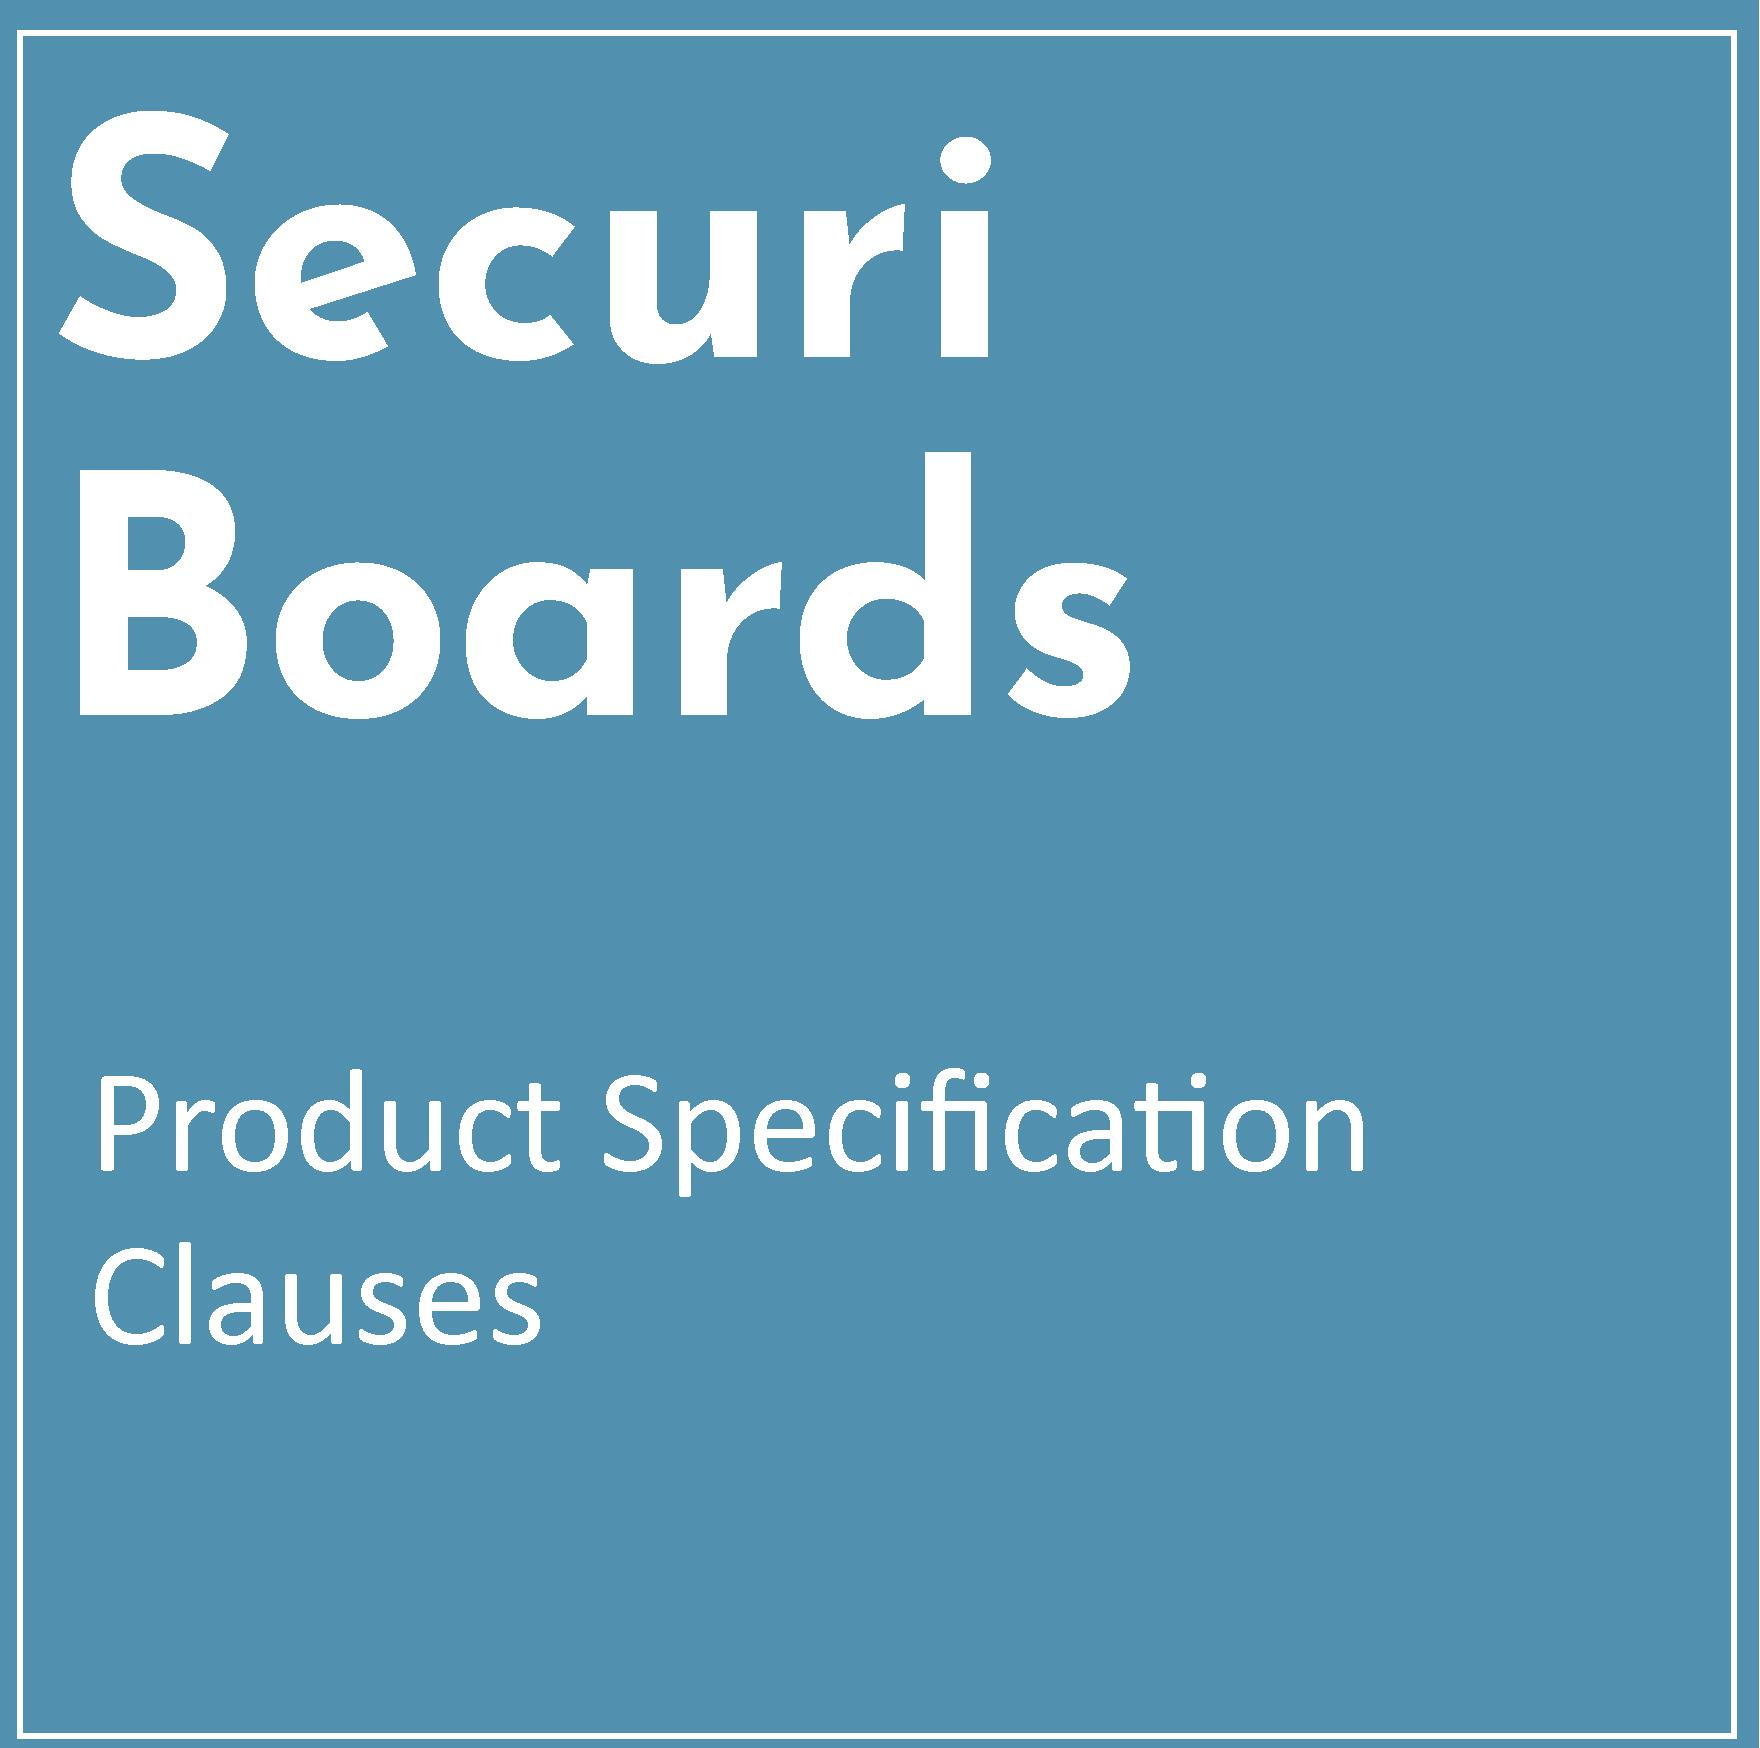 Product Specification Clause – Securi Board